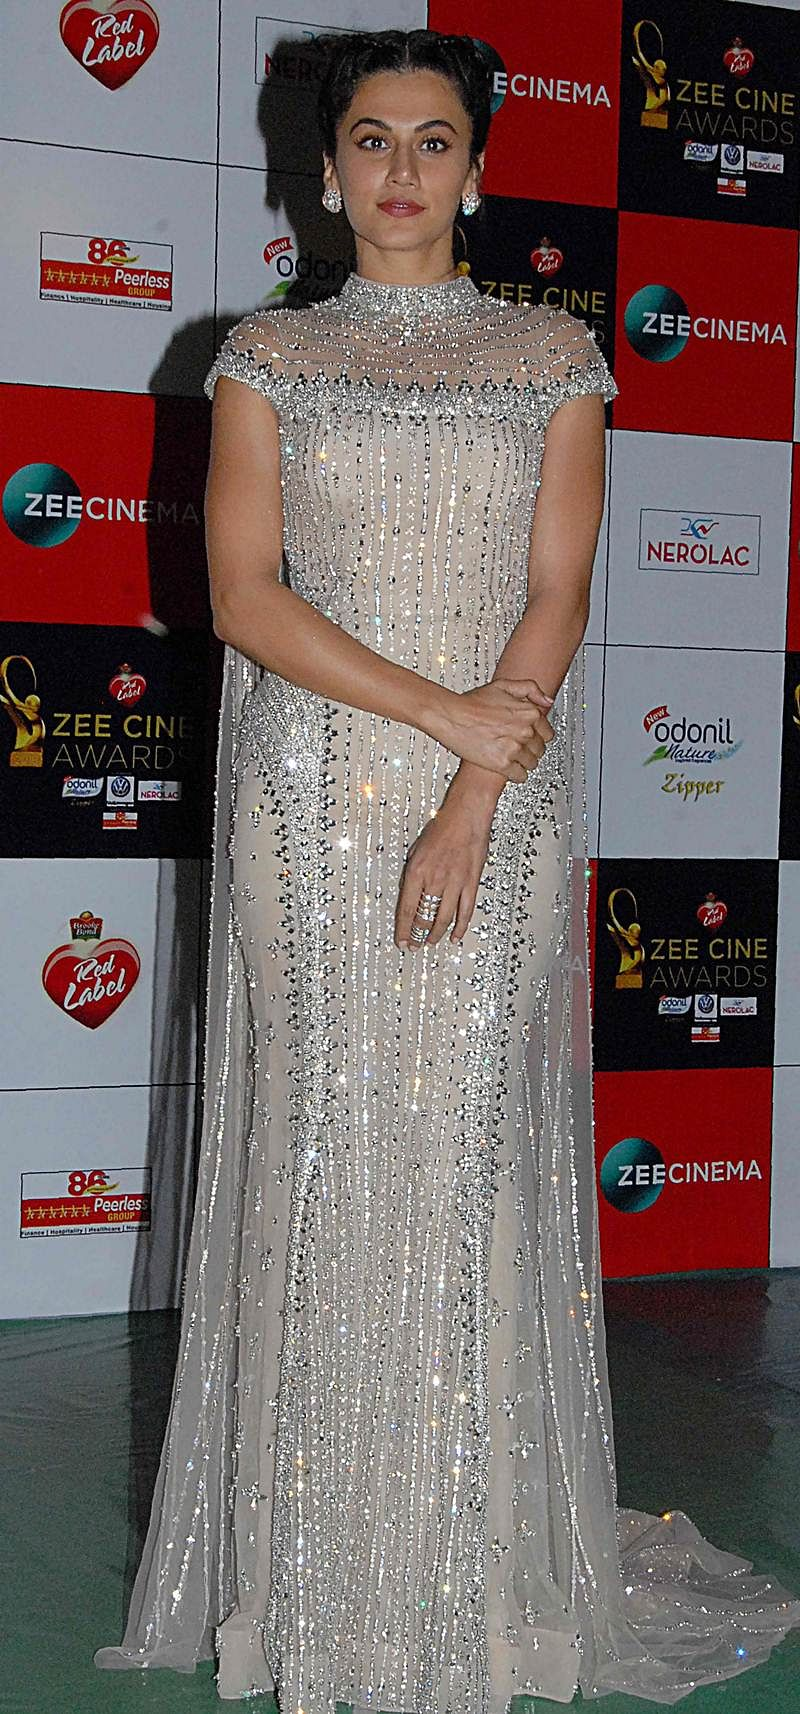 Taapsee Pannu attends the 'Zee Cine Awards 2018' ceremony in Mumbai on December 19, 2017. / AFP PHOTO / Sujit Jaiswal